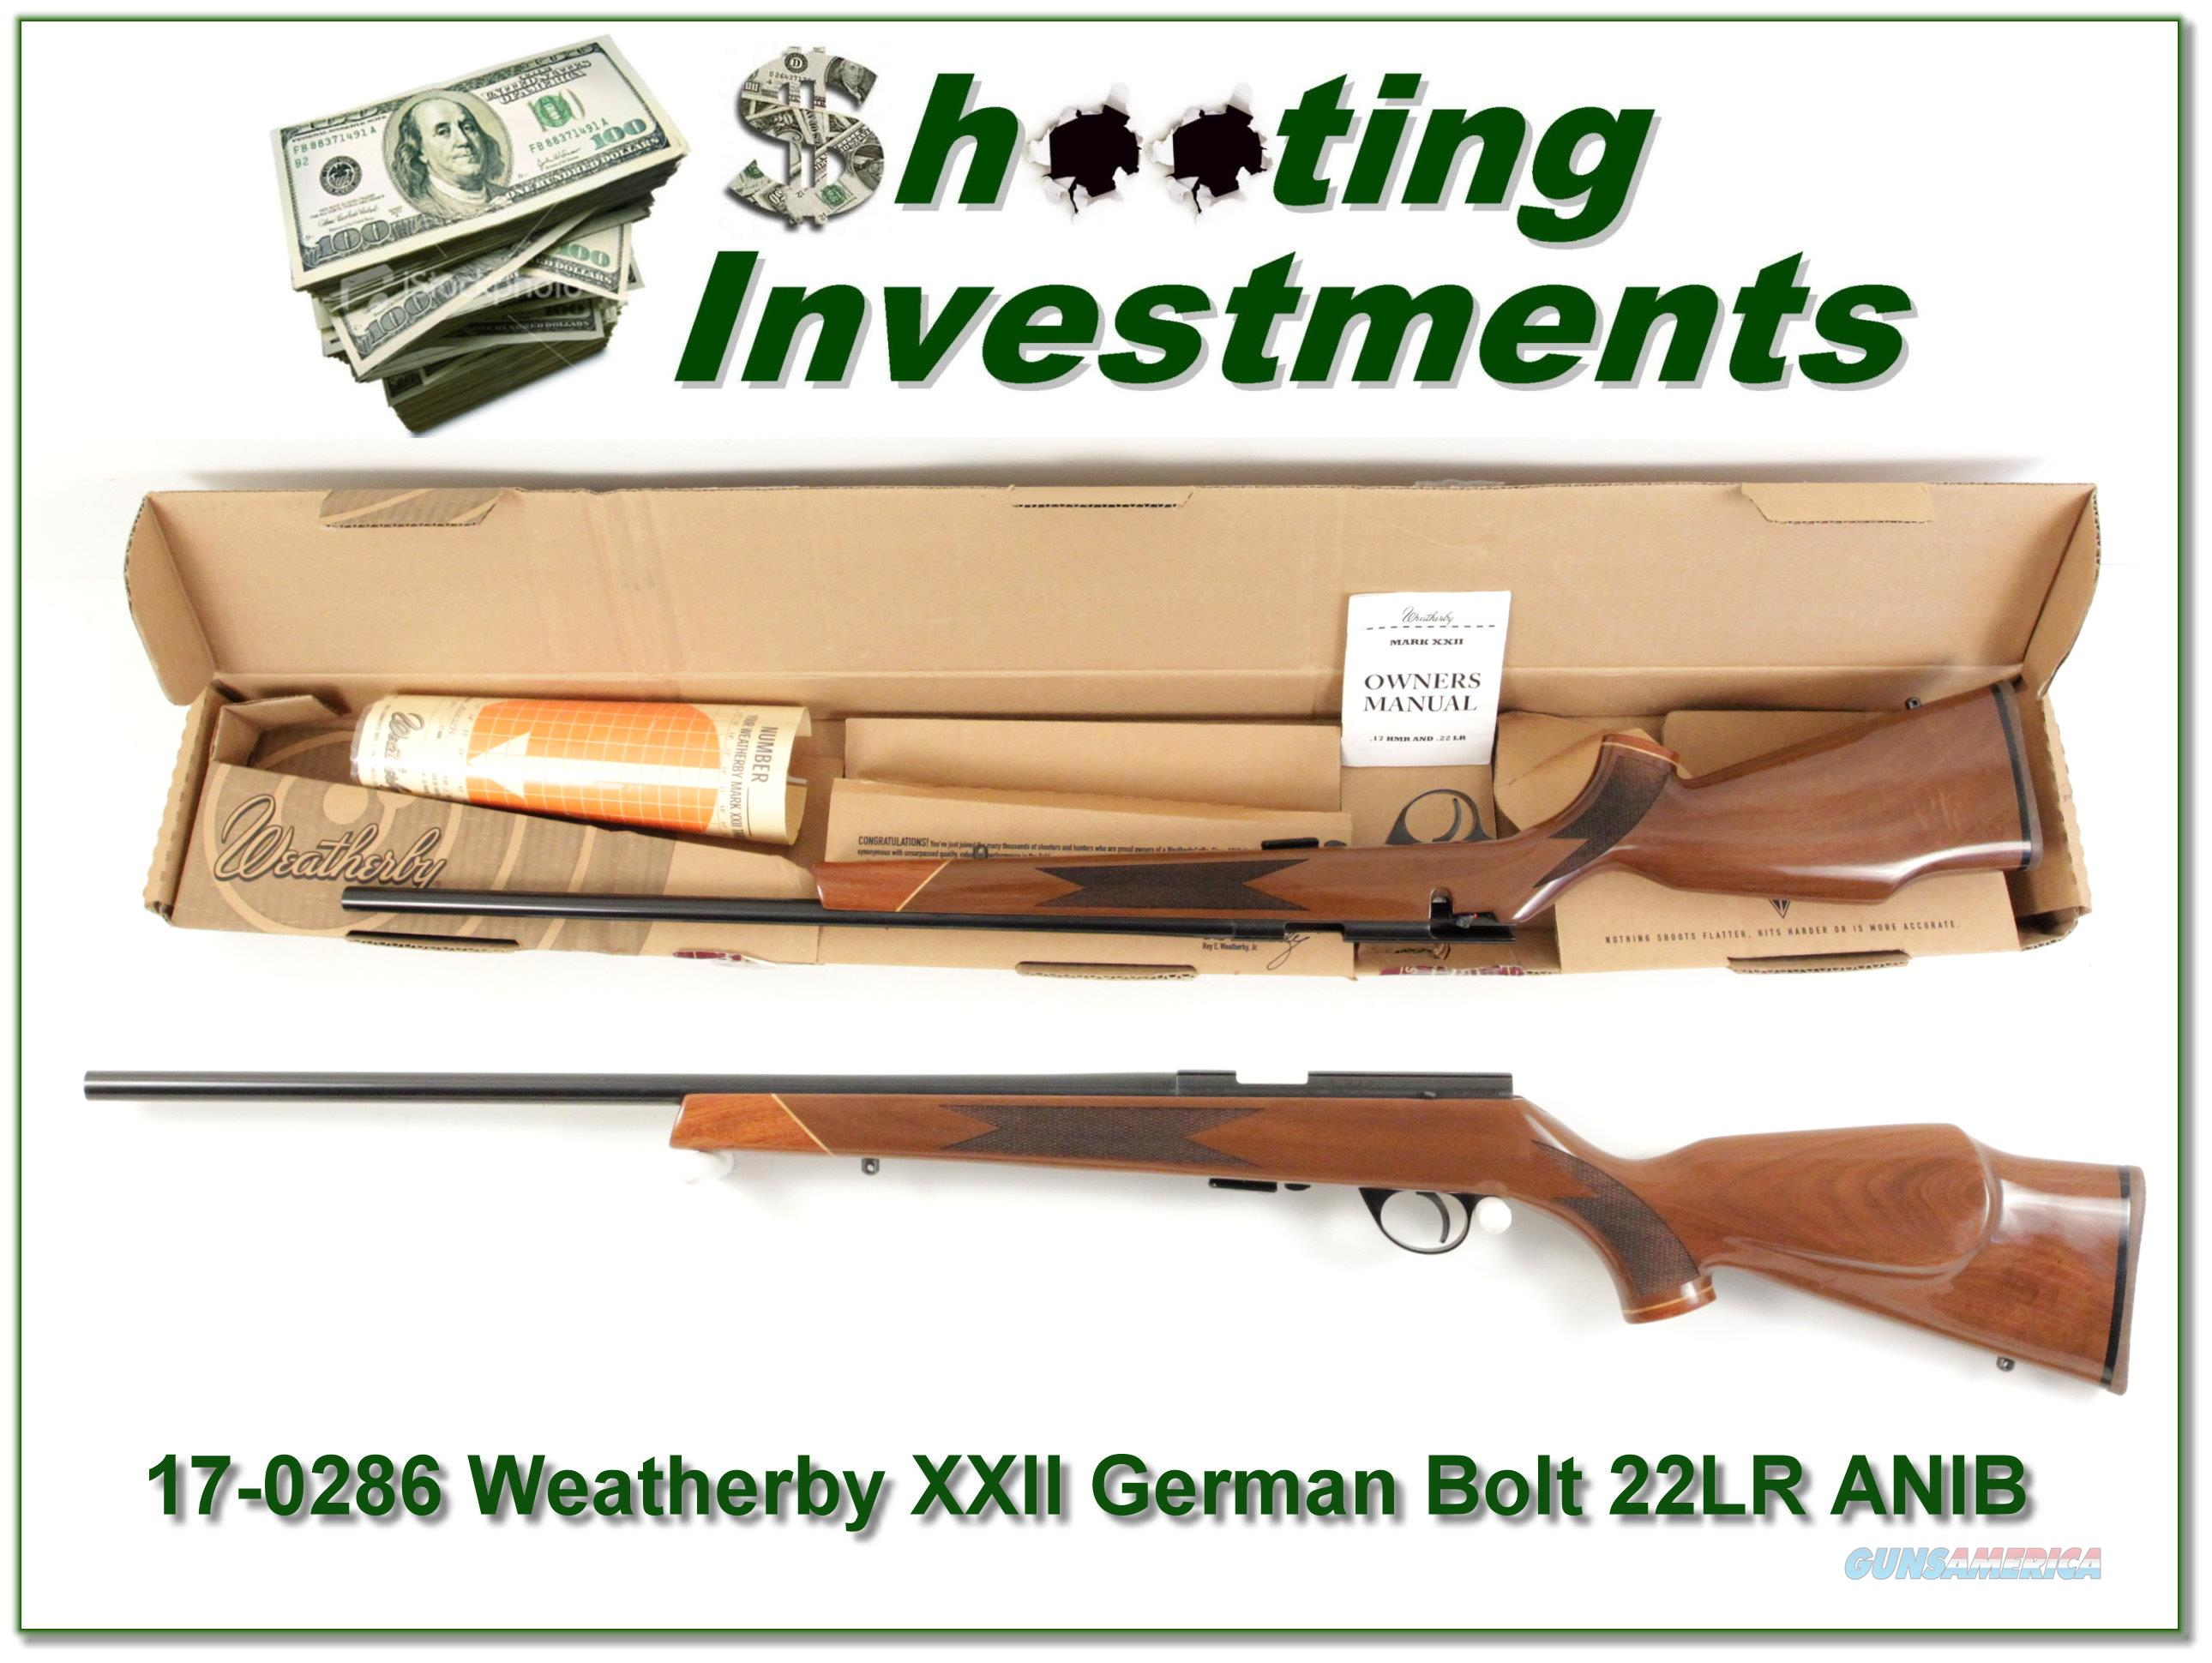 Weatherby XXII 22 Bolt action Anschutz made ANIB  Guns > Rifles > Weatherby Rifles > Sporting